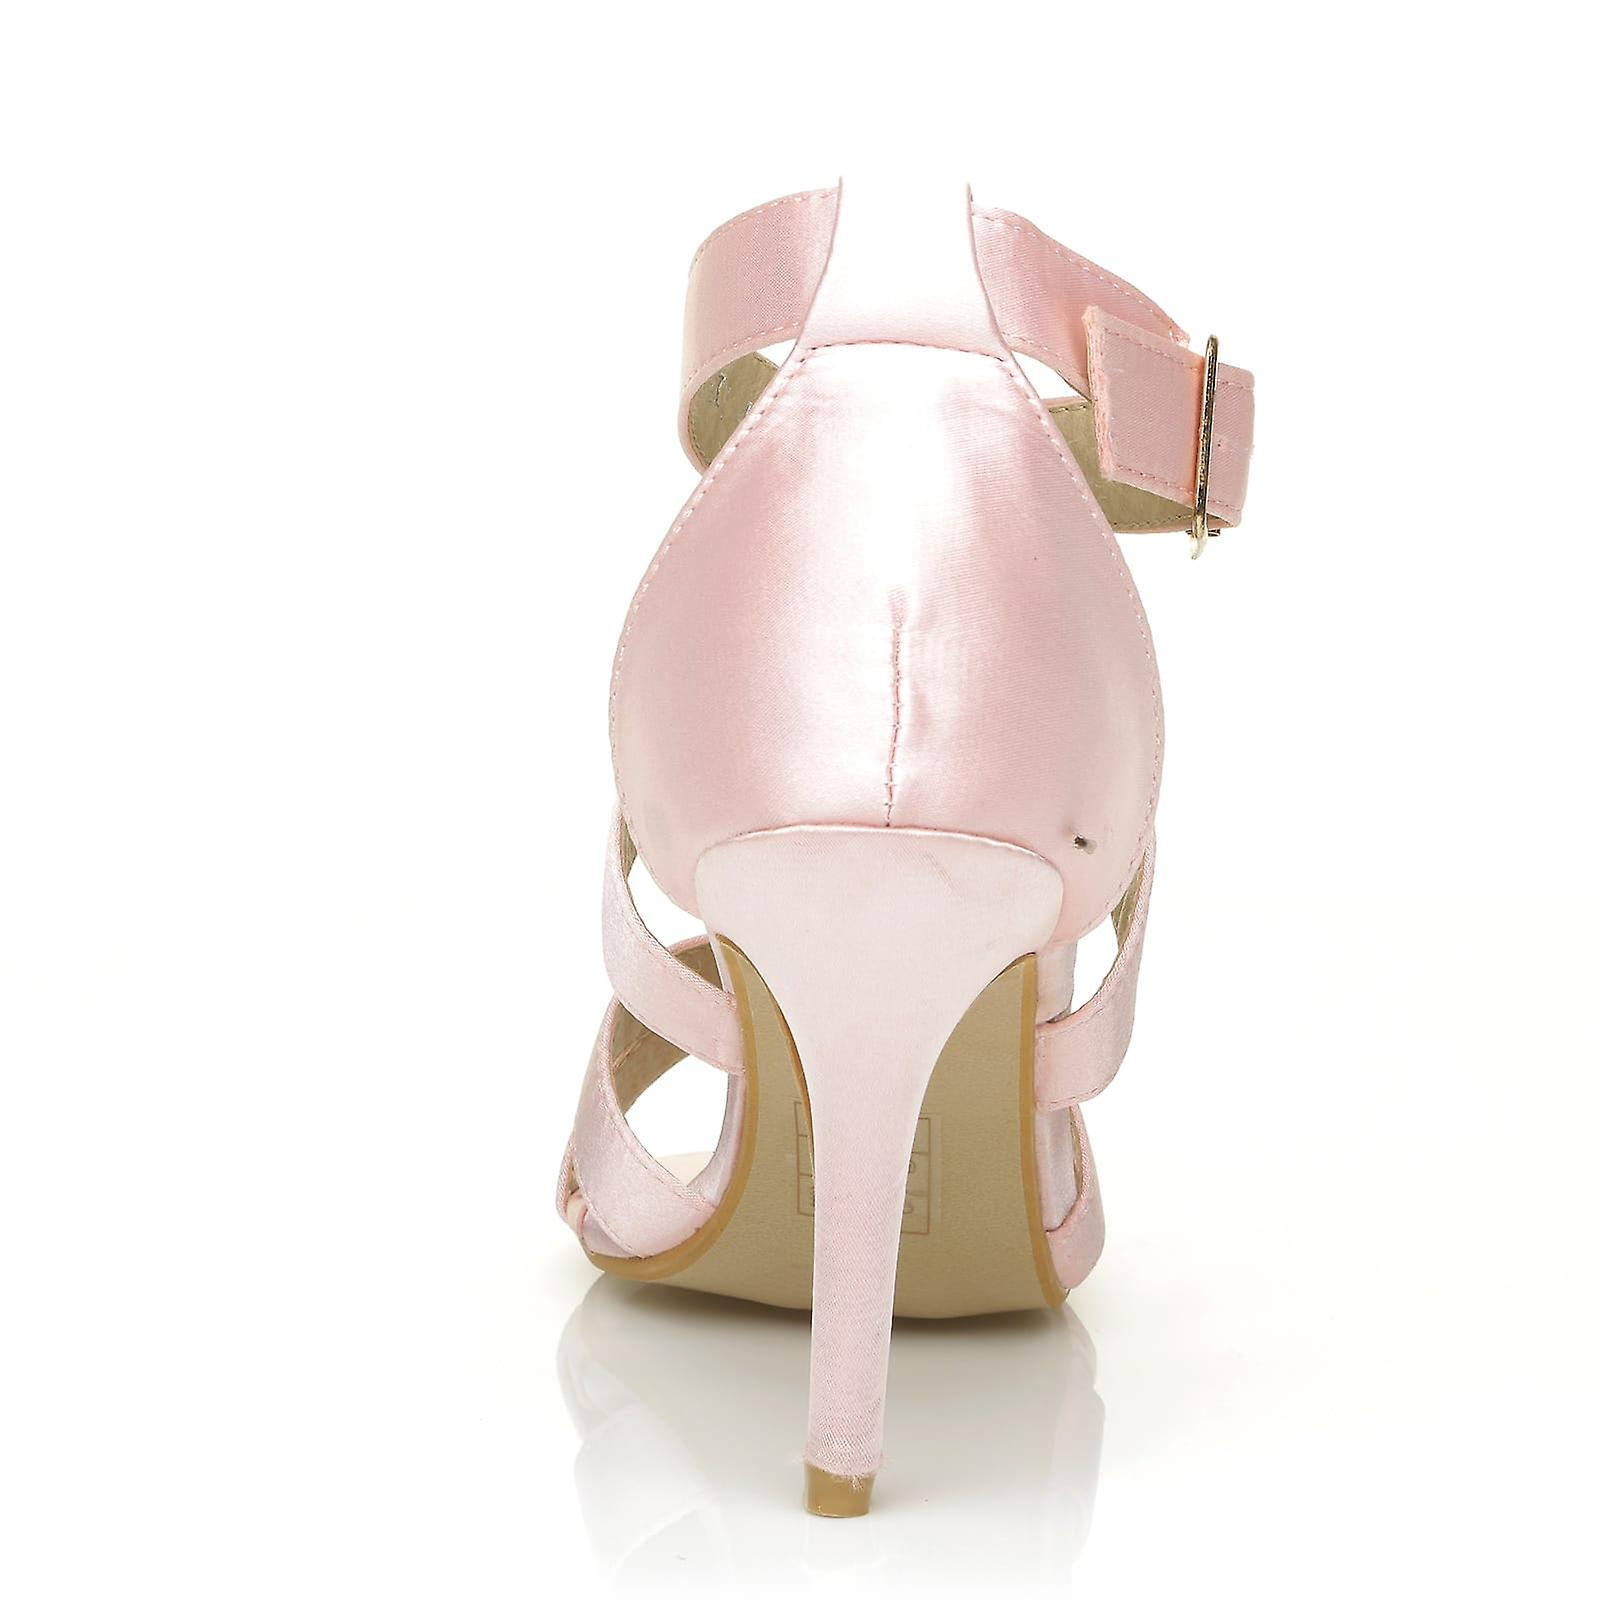 Bridal Baby Sandals High Satin Elegant Strappy SOPHIE Heel Pink Tg4XdWqA